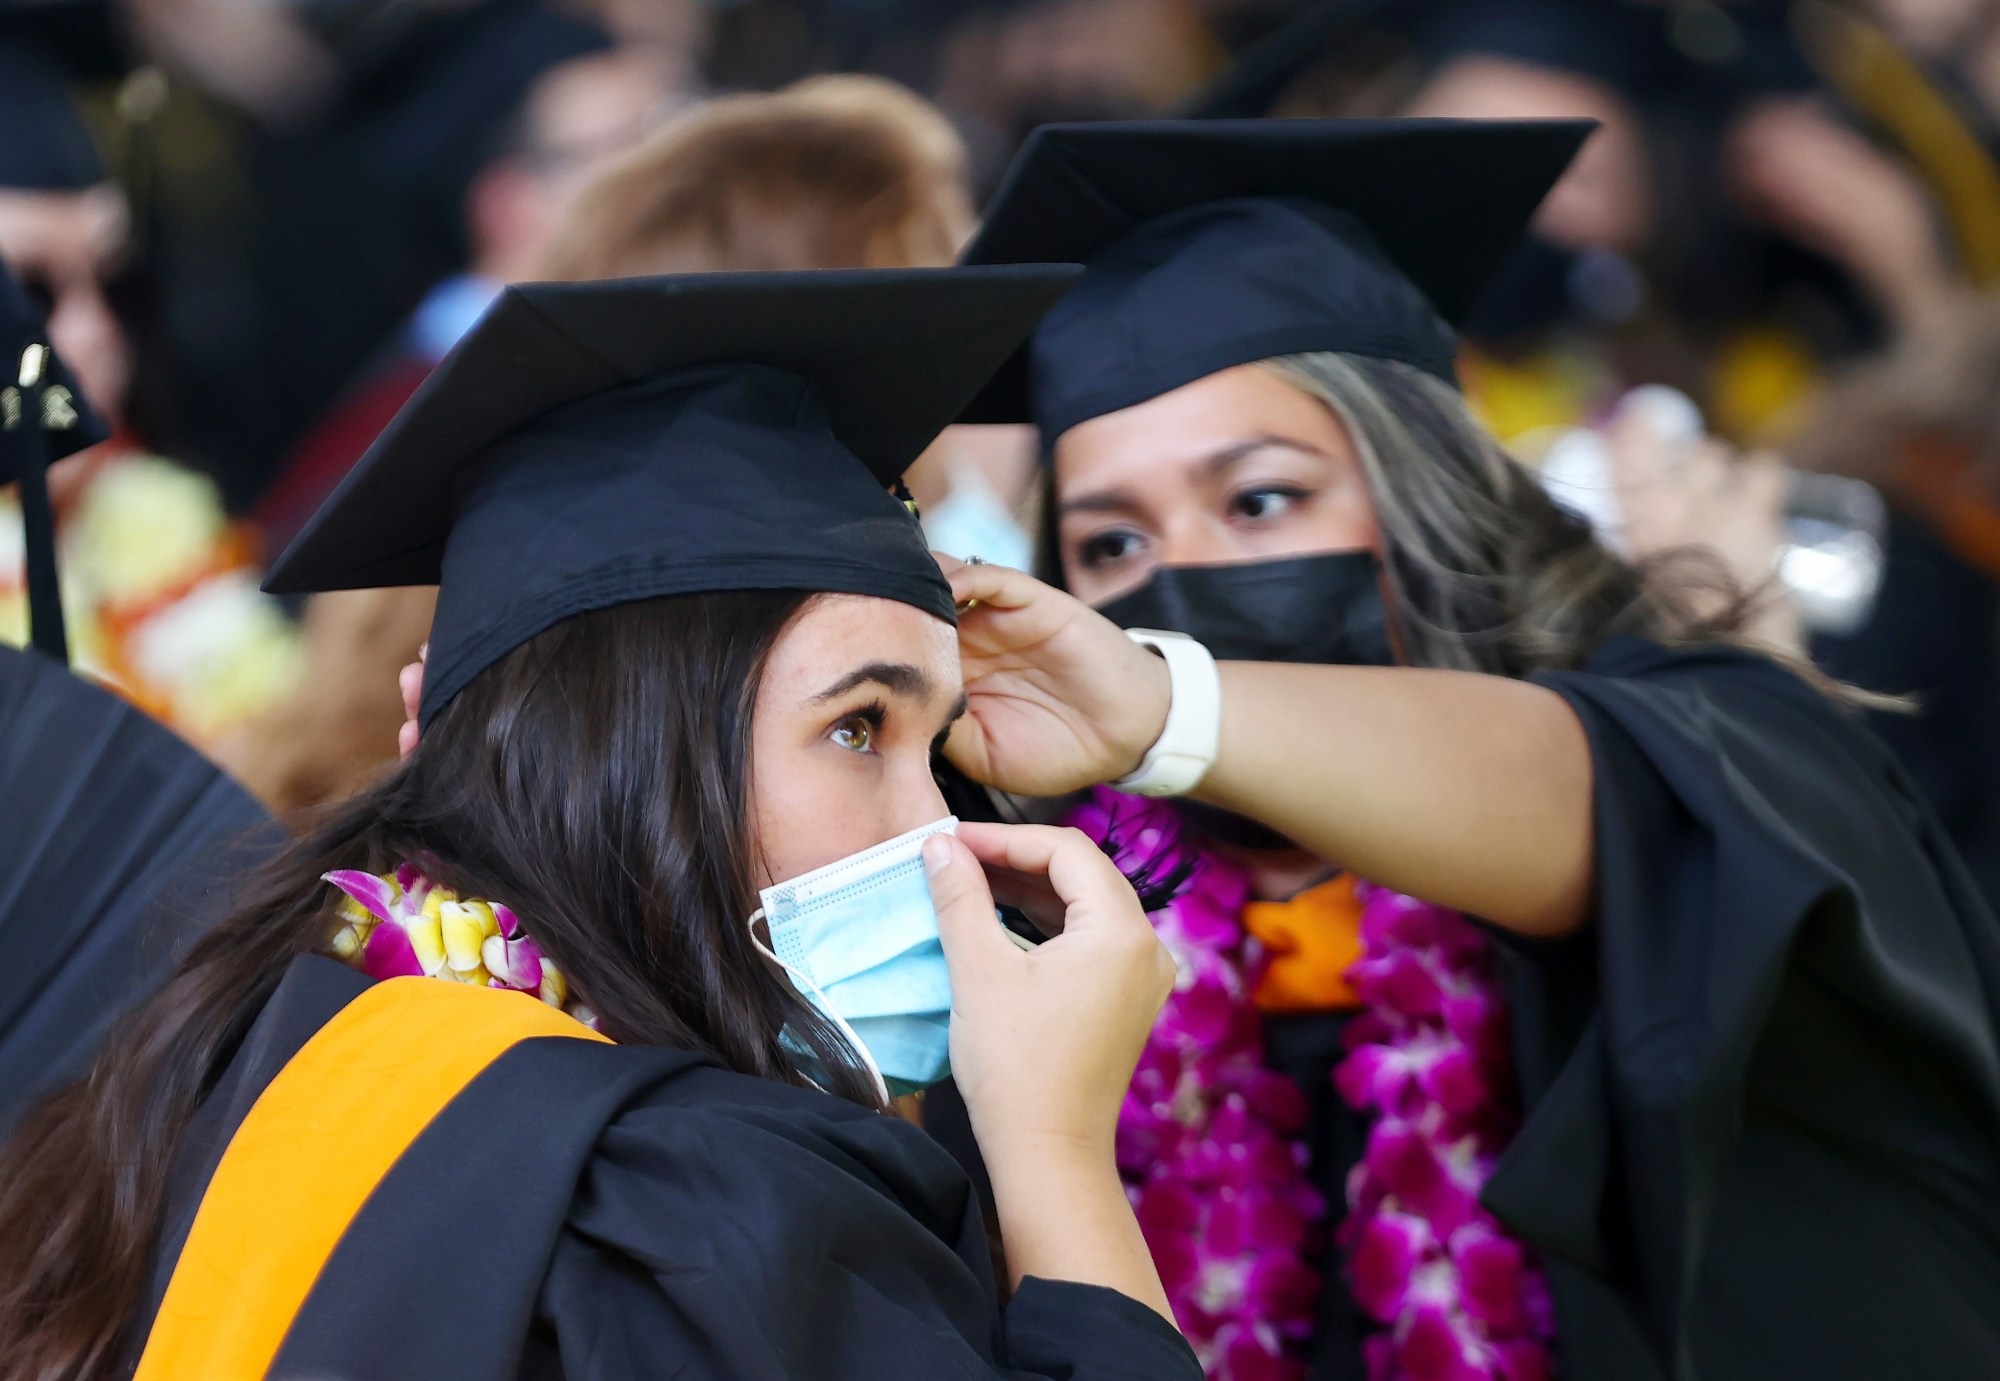 Cal State Los Angeles graduates prepare for their commencement ceremony, which was held outdoors beneath a tent on campus on July 27, 2021. Commencement ceremonies for graduates from the classes of 2021 and 2020 are being held outdoors over seven days following delays due to the COVID-19 pandemic. (Mario Tama / Getty Images)